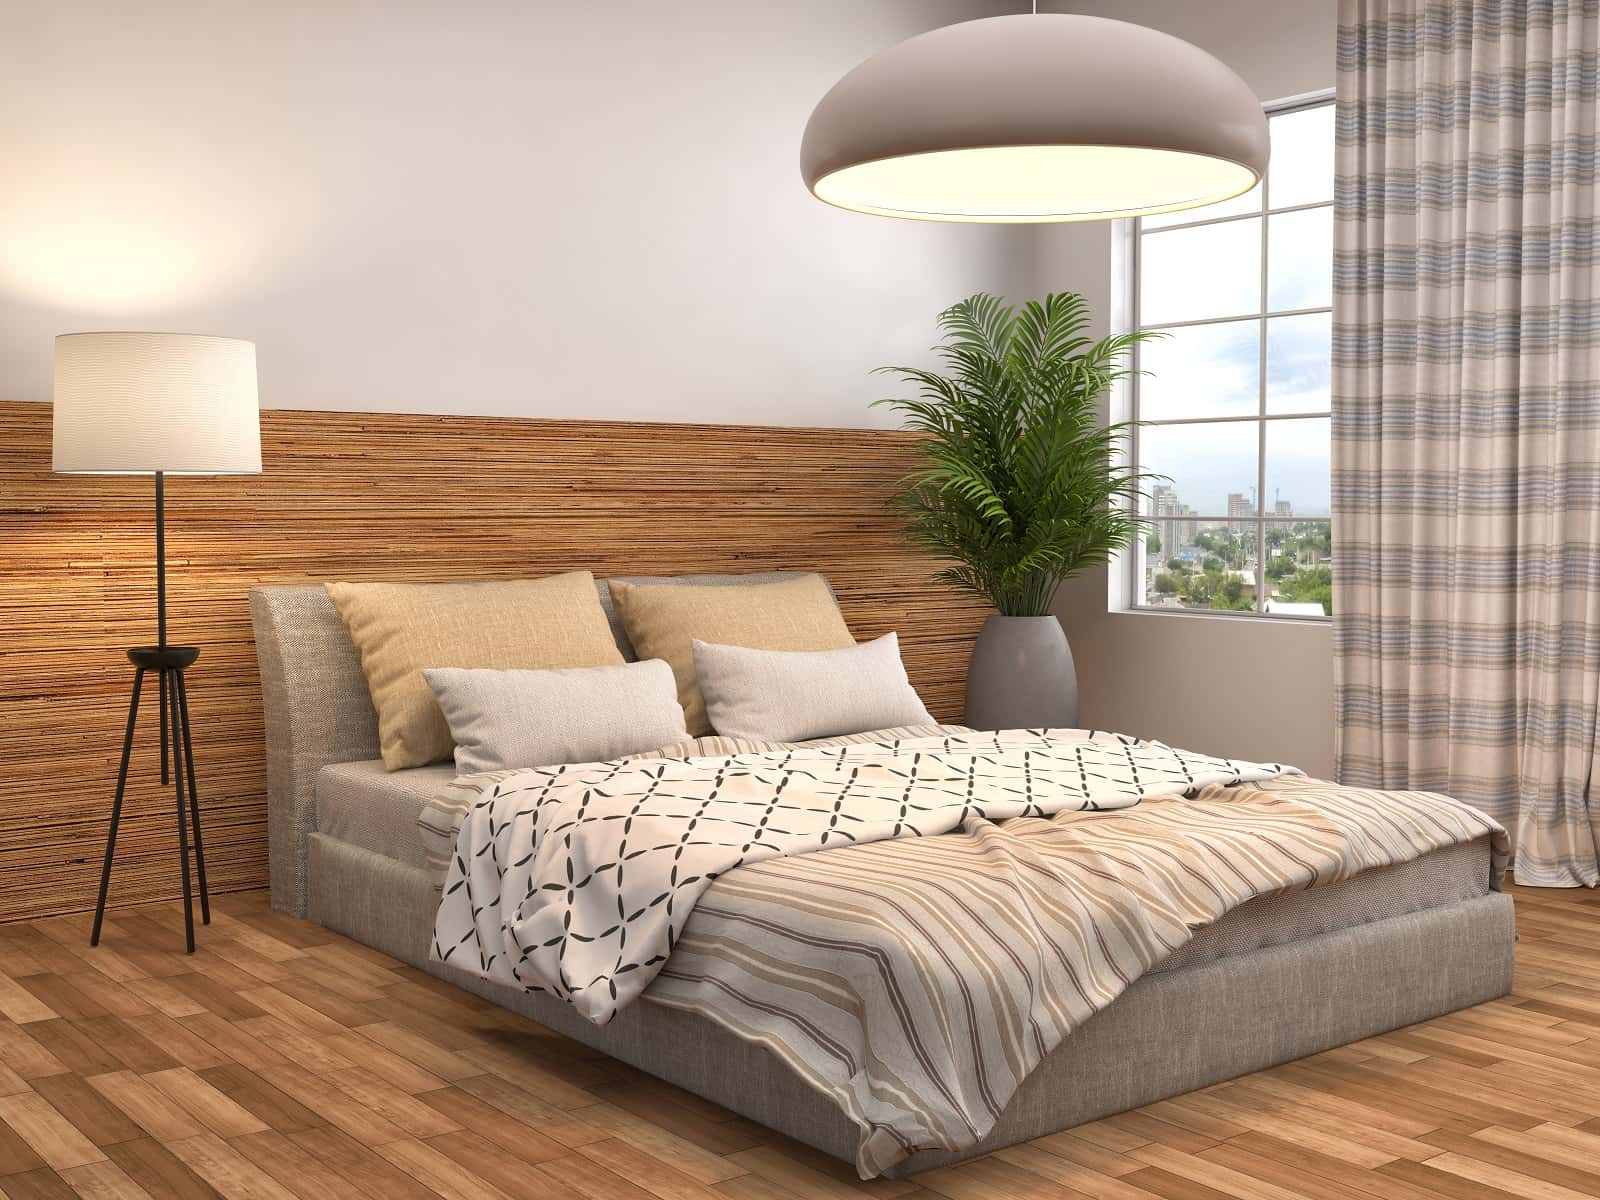 How To Find The Perfect Bedding For Your Room. Contemporary styled bedroom with platform bed and big gray semispheric shade of the lamp